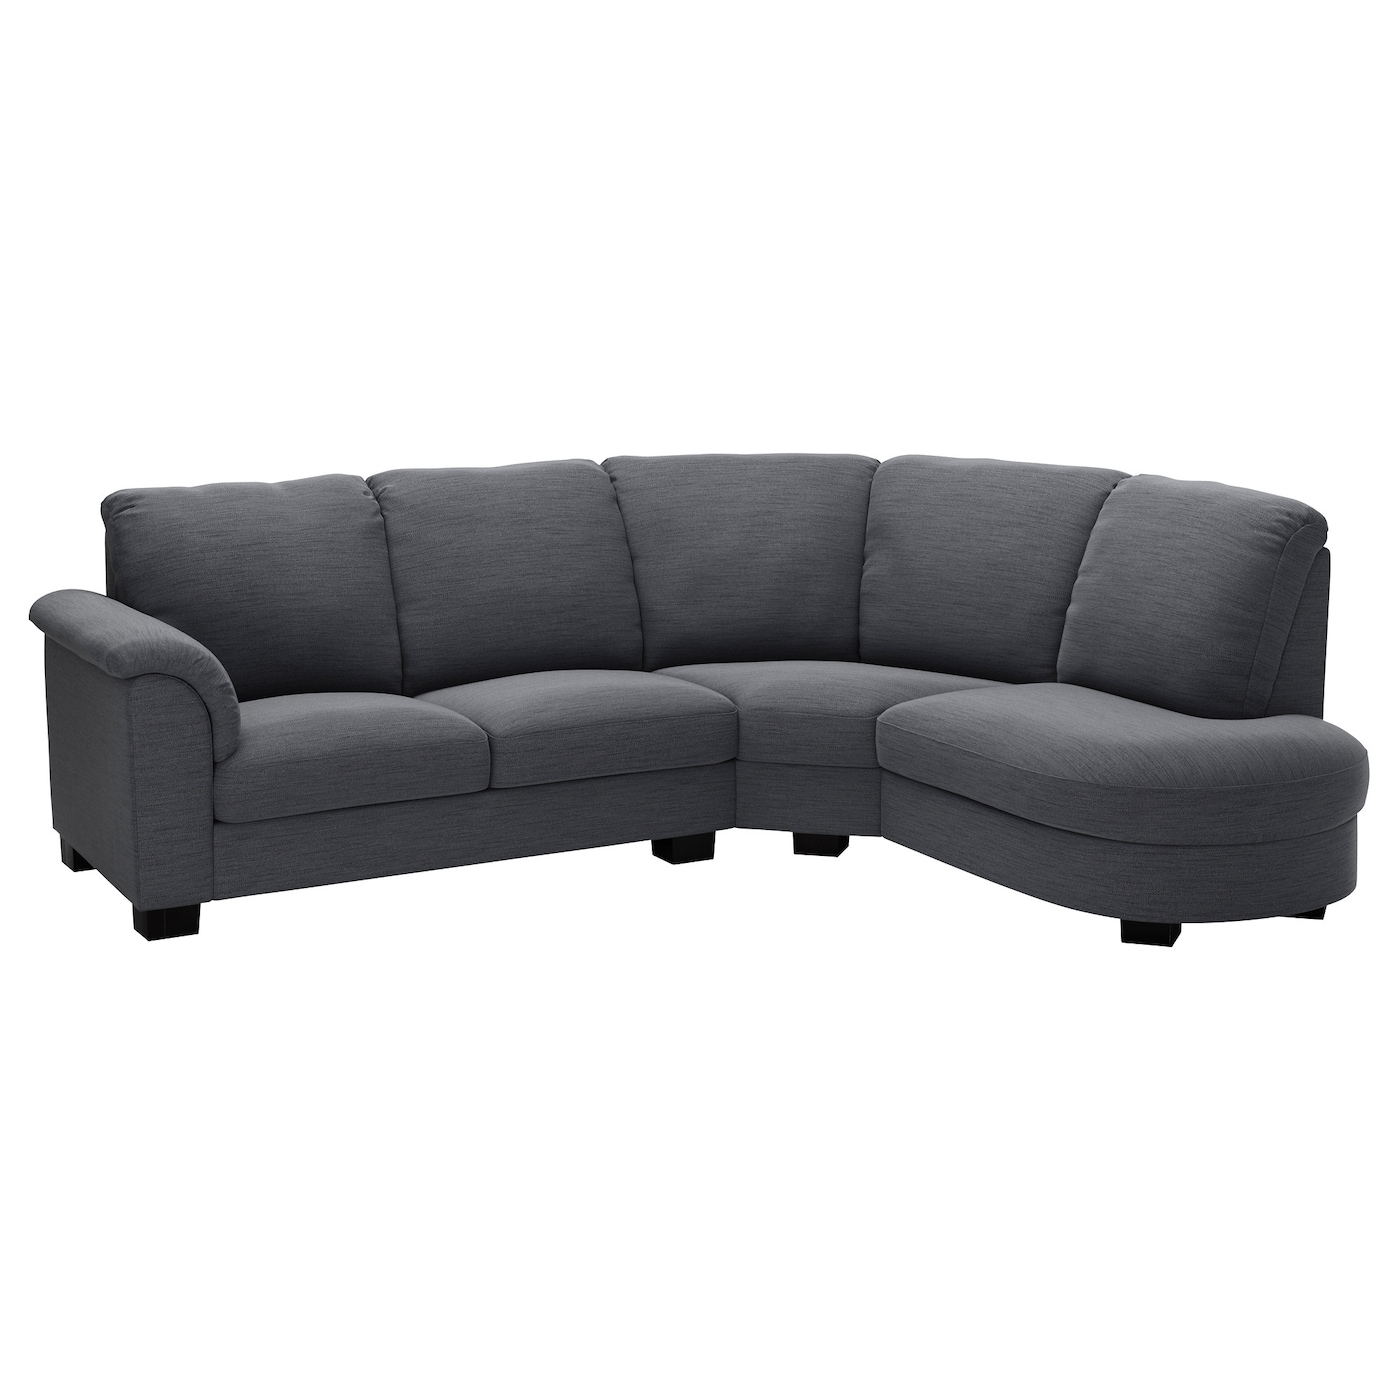 Schlafsofa ikea  TIDAFORS Corner sofa with arm left Hensta grey - IKEA